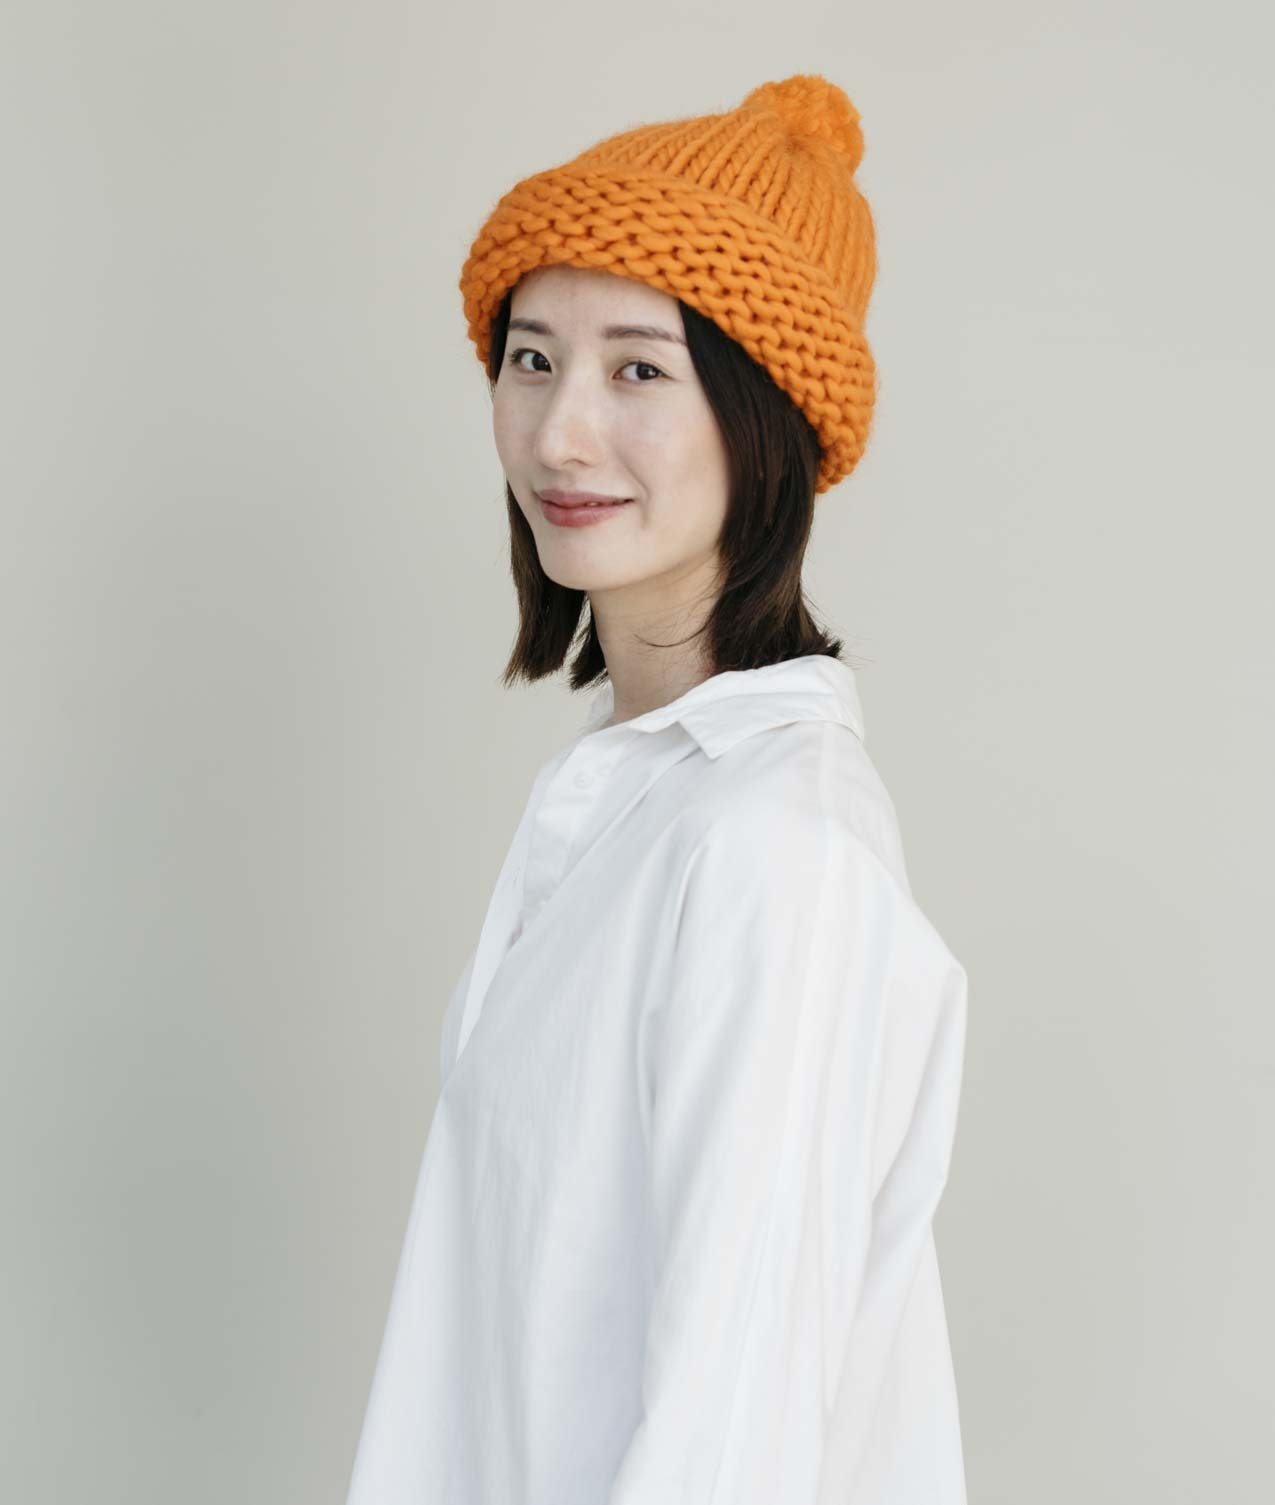 Easy Peasy Collection - Hats and Beanies - BLANCA BEANIE - 1